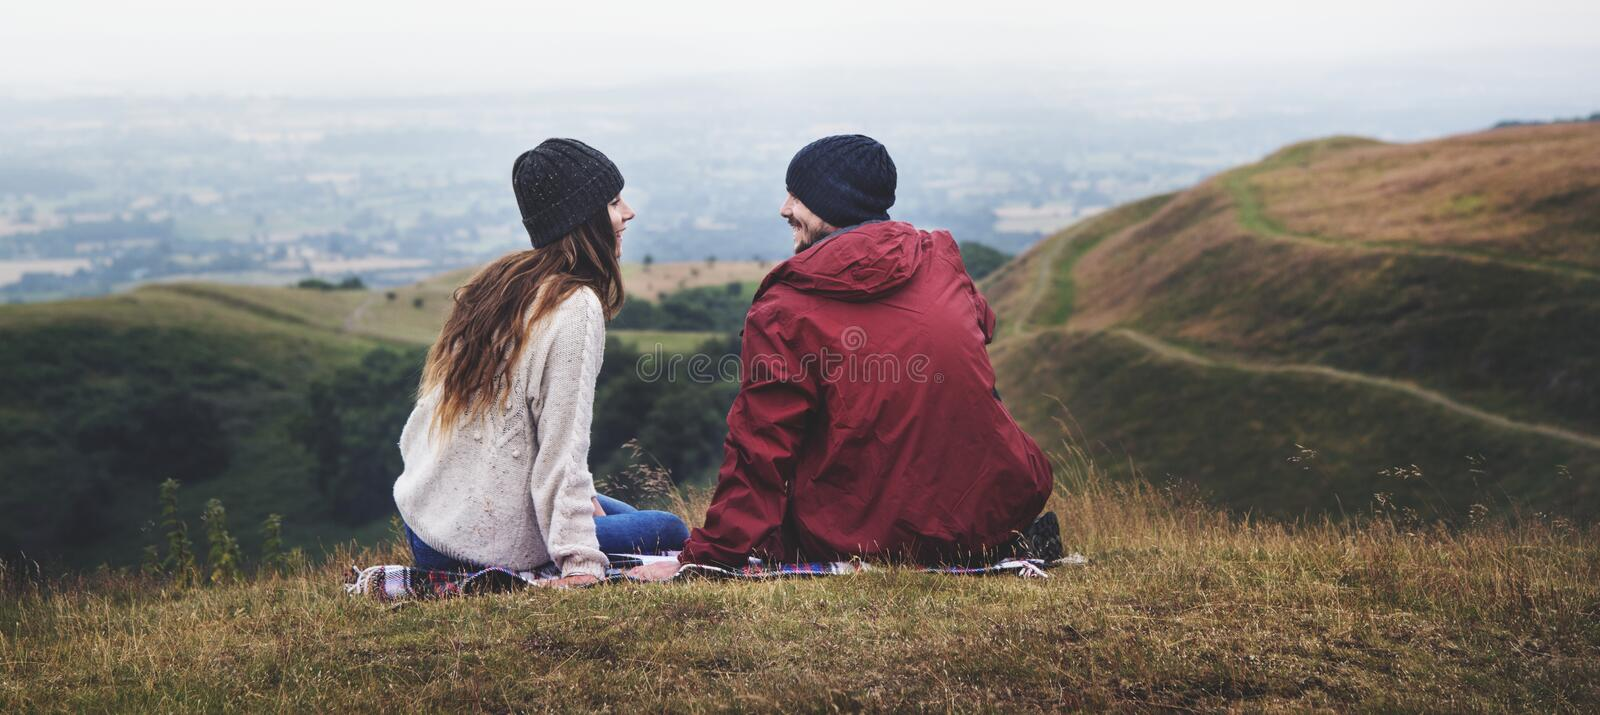 Friends exploring and enjoying nature shoot royalty free stock photography